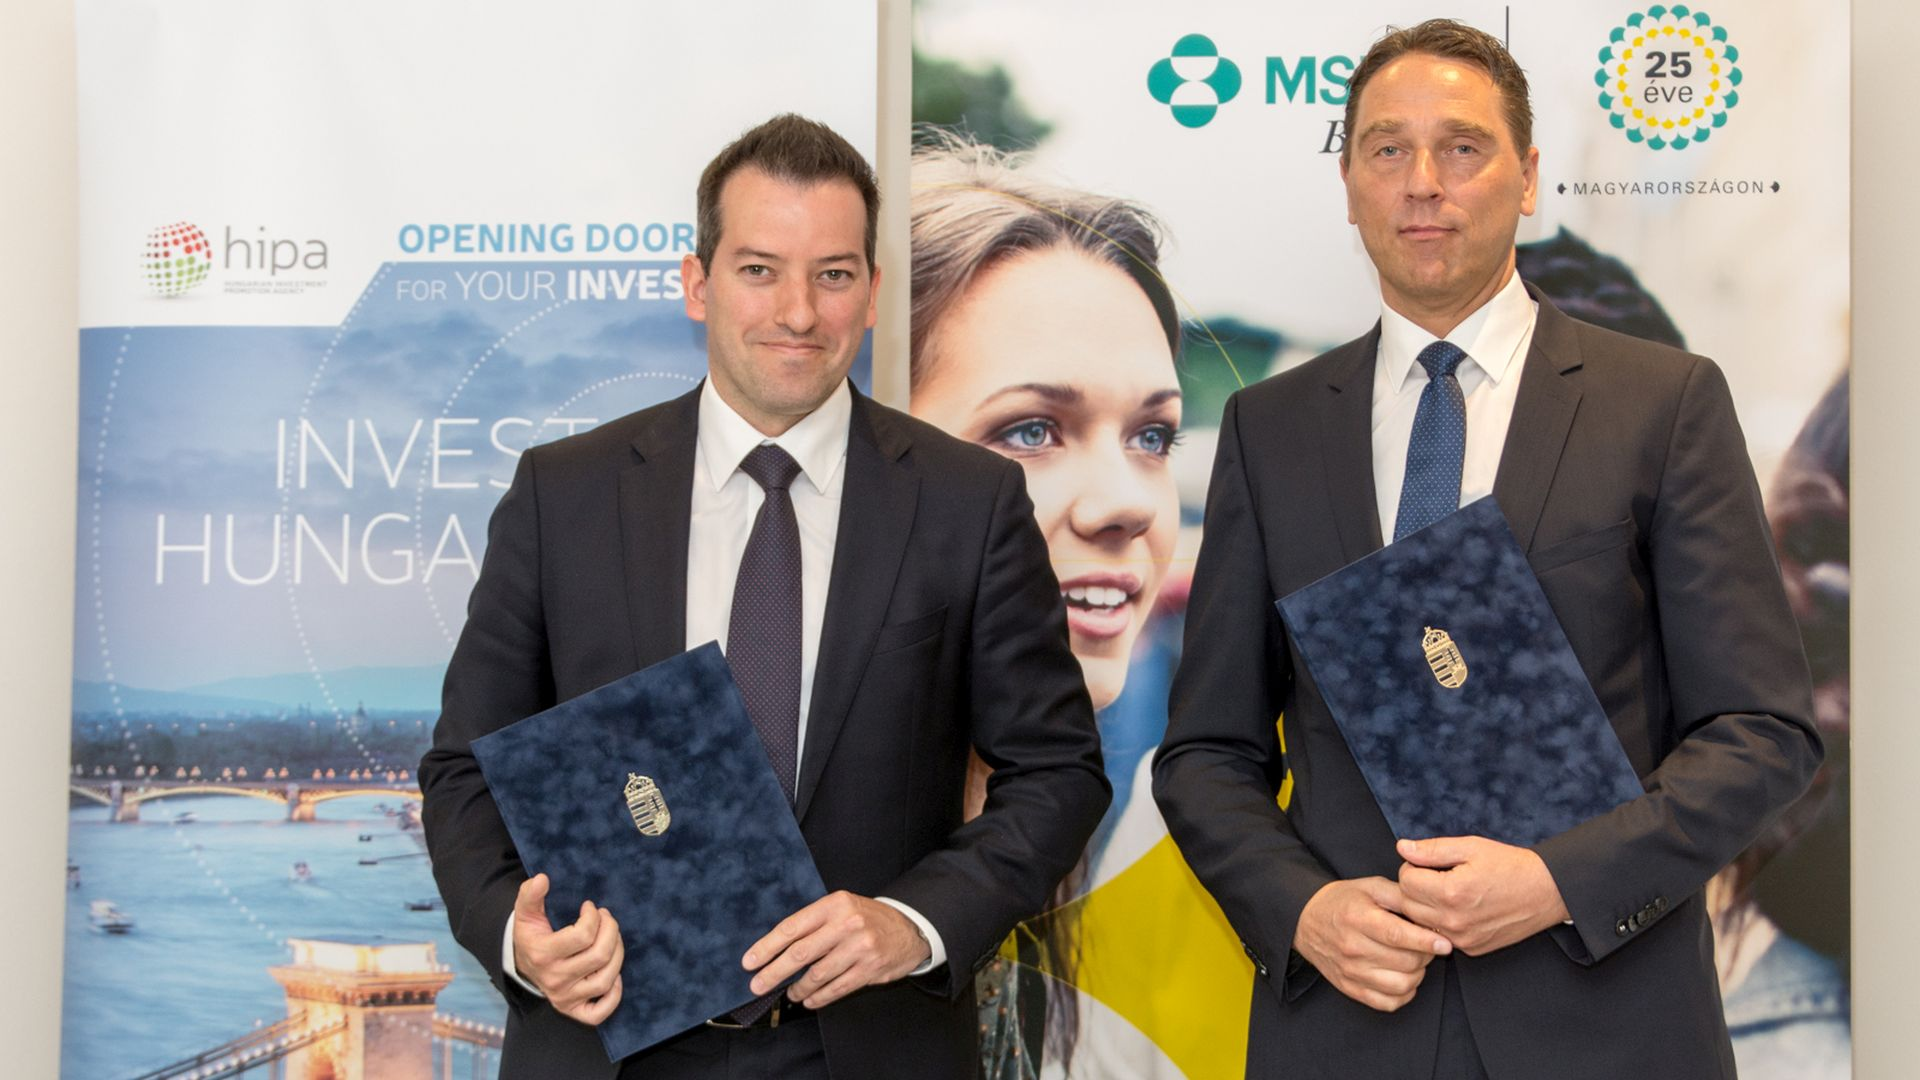 HIPA and MSD Pharma Hungary signed a Memorandum of Understanding